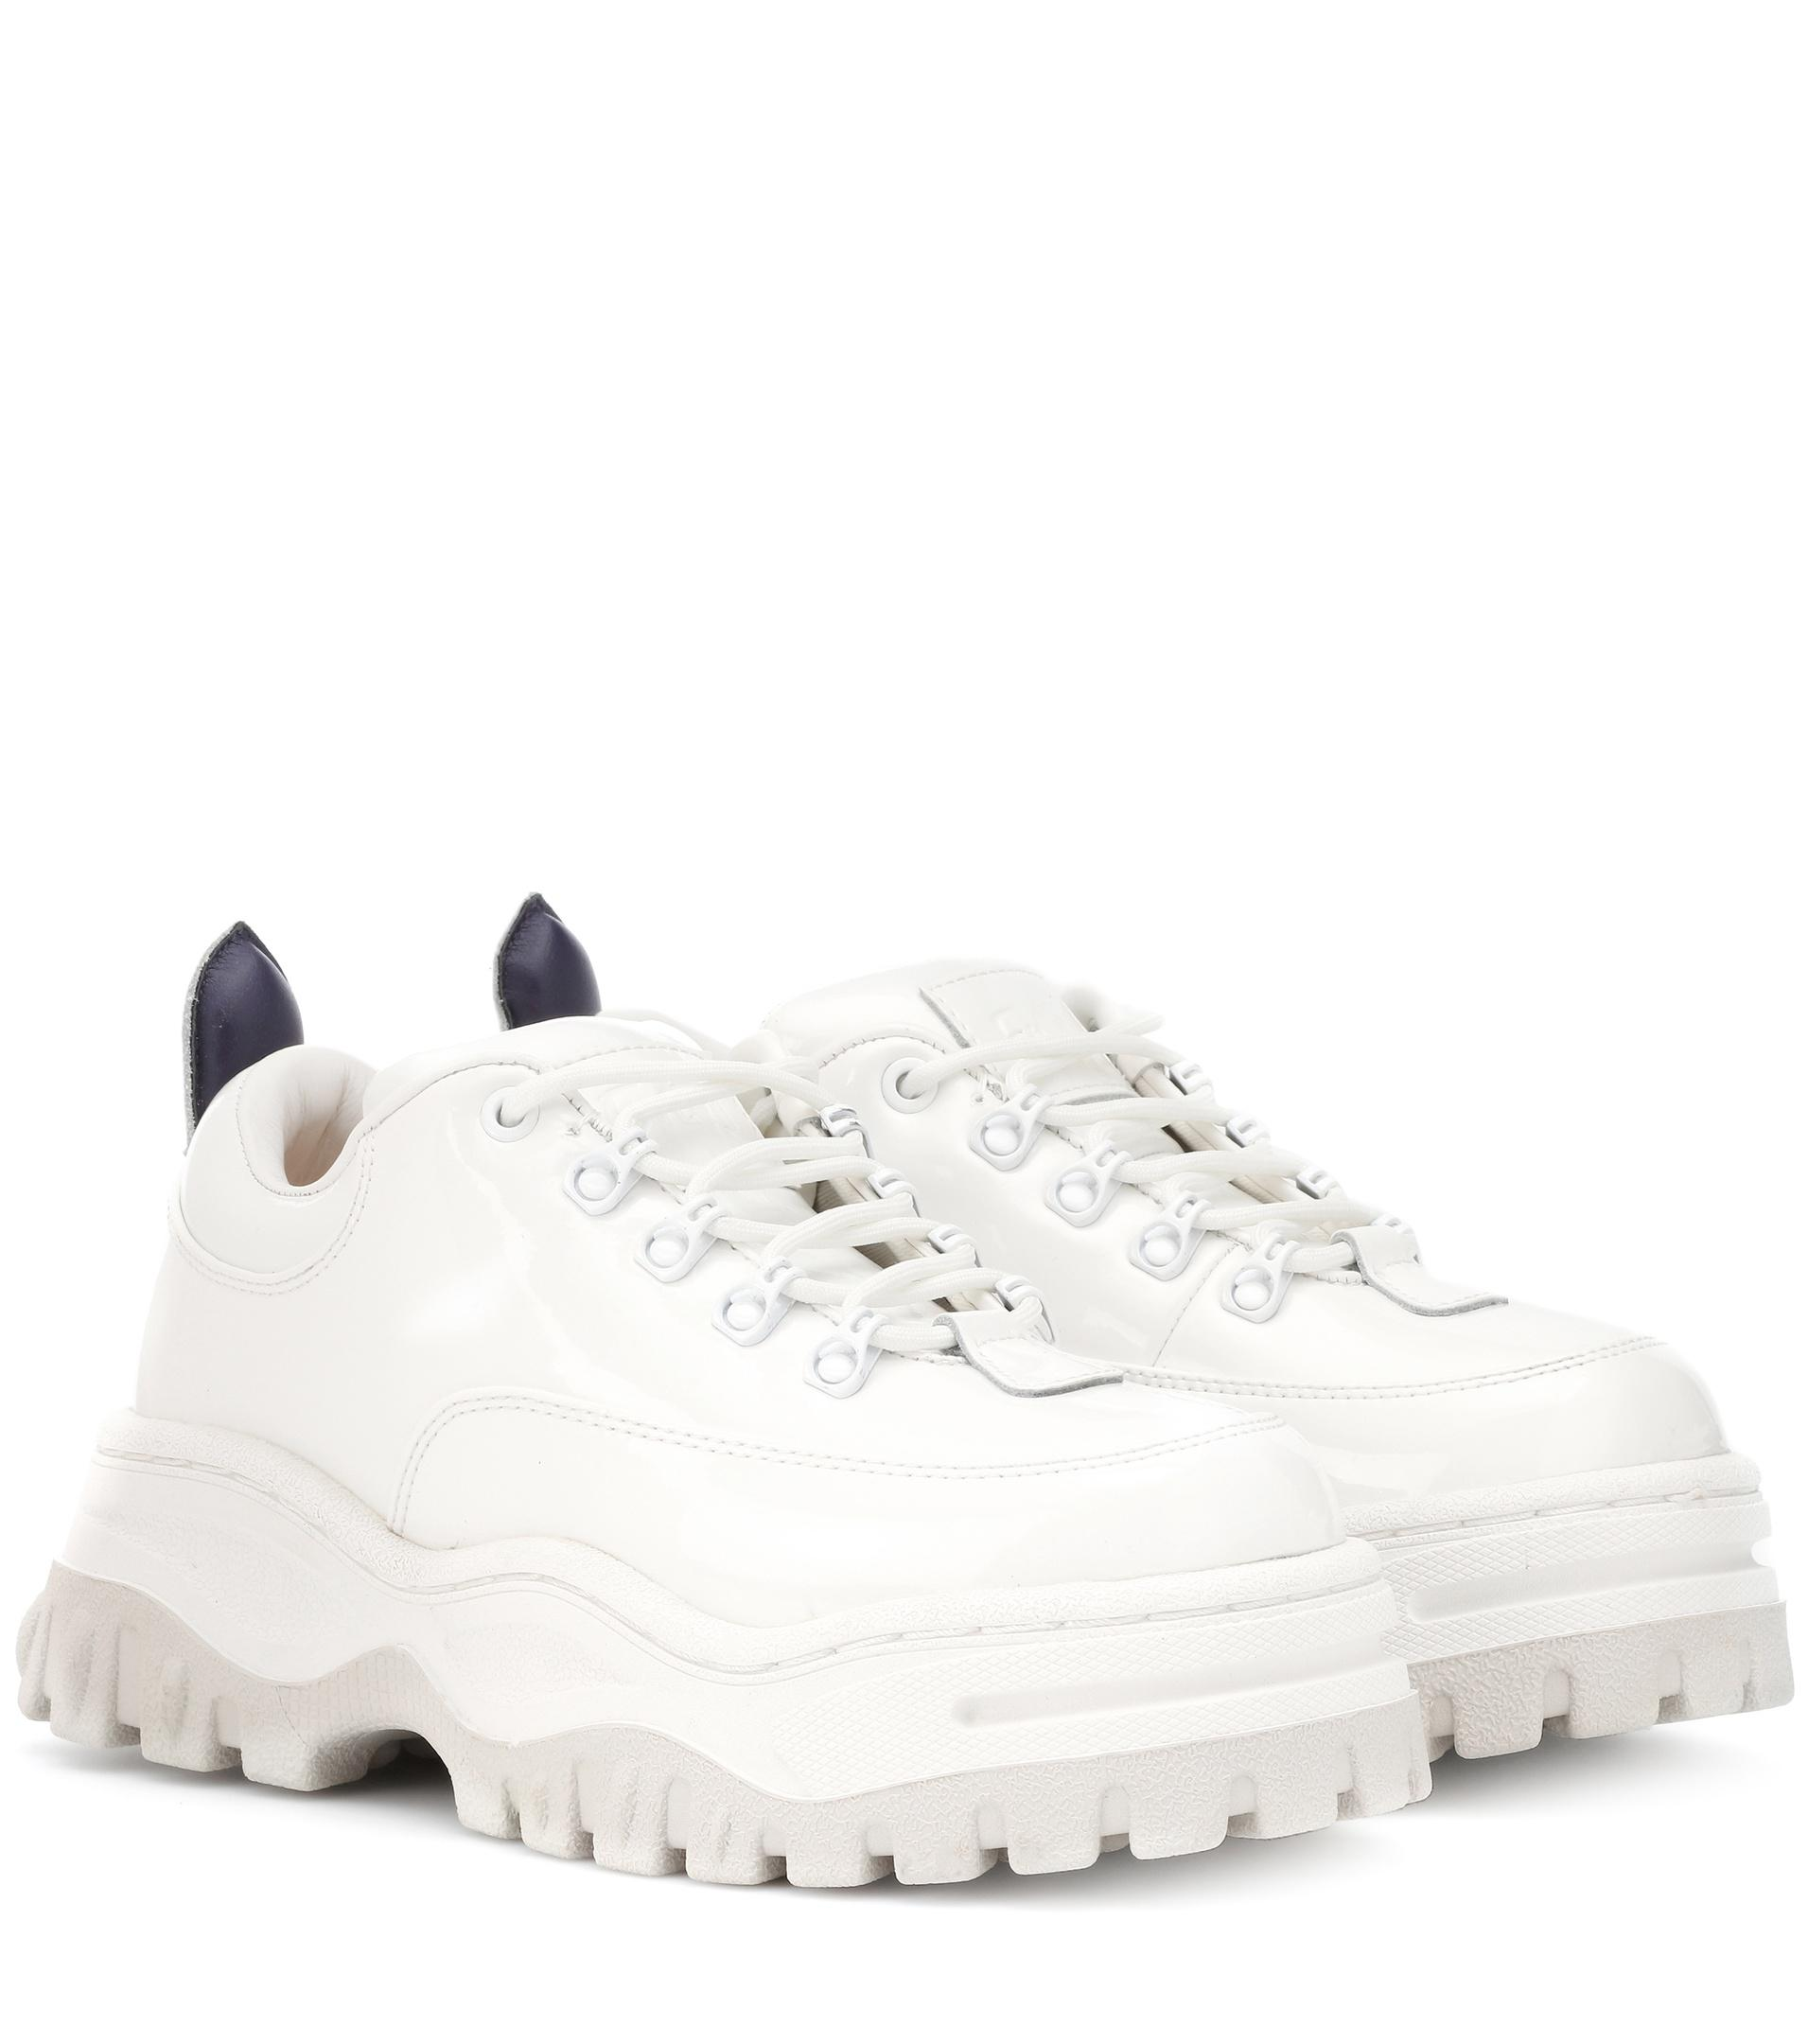 Angel Save Lyst in White Leather Eytys Patent Sneakers 13 drBoeWCx